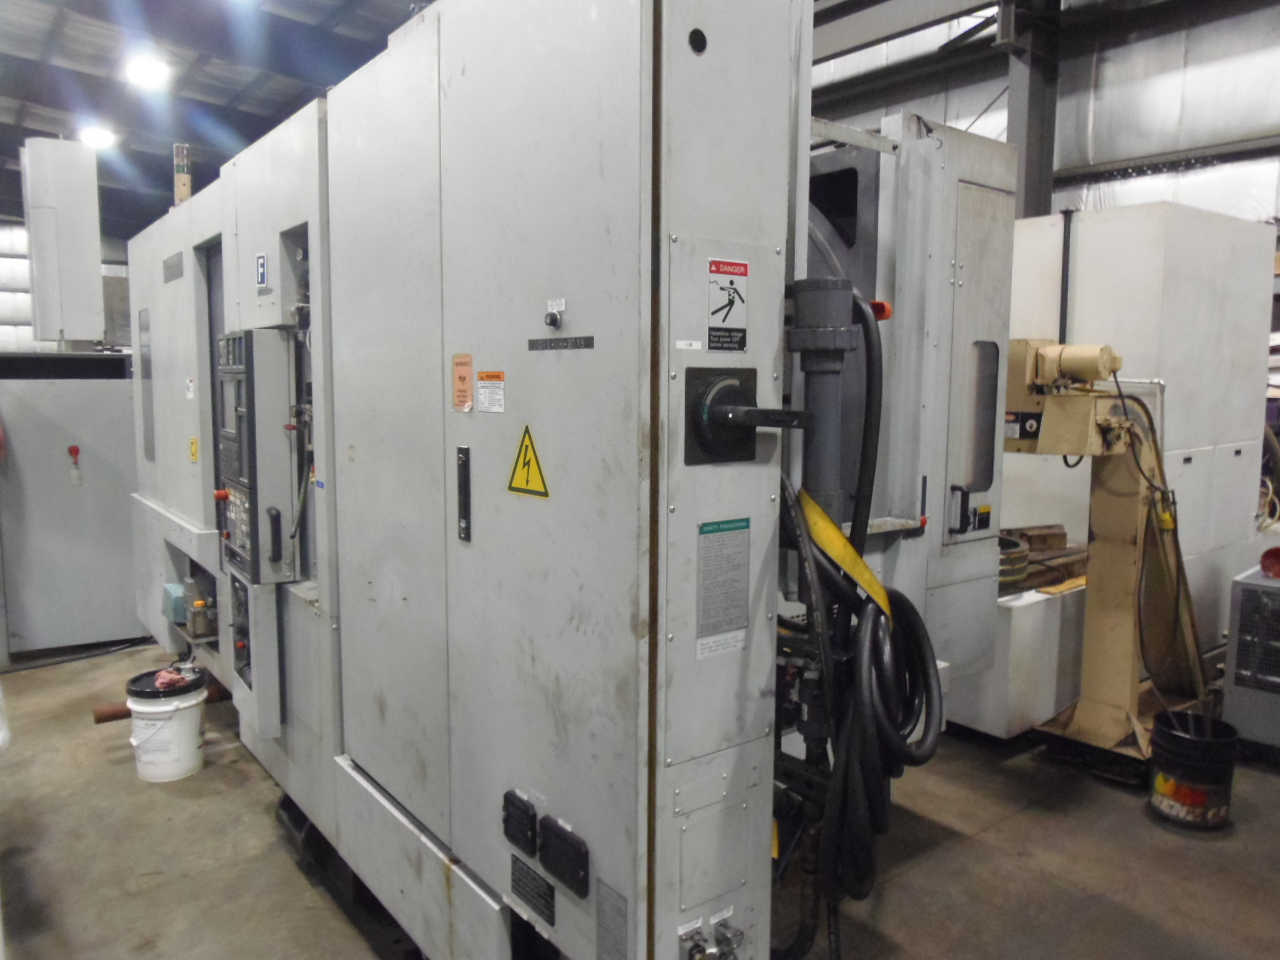 NH-5000/40 MORI SEIKI HORIZONTAL MACHINING CENTER, WITH COOLANT SYSTEM, MODEL NH5000, 2003, THRU SPINDLE COOLANT, 1 DEGREE, MSC501 WITH MAPPS, 60 ATC, 40 TAPER, 2 PALLET, 14,000 RPM